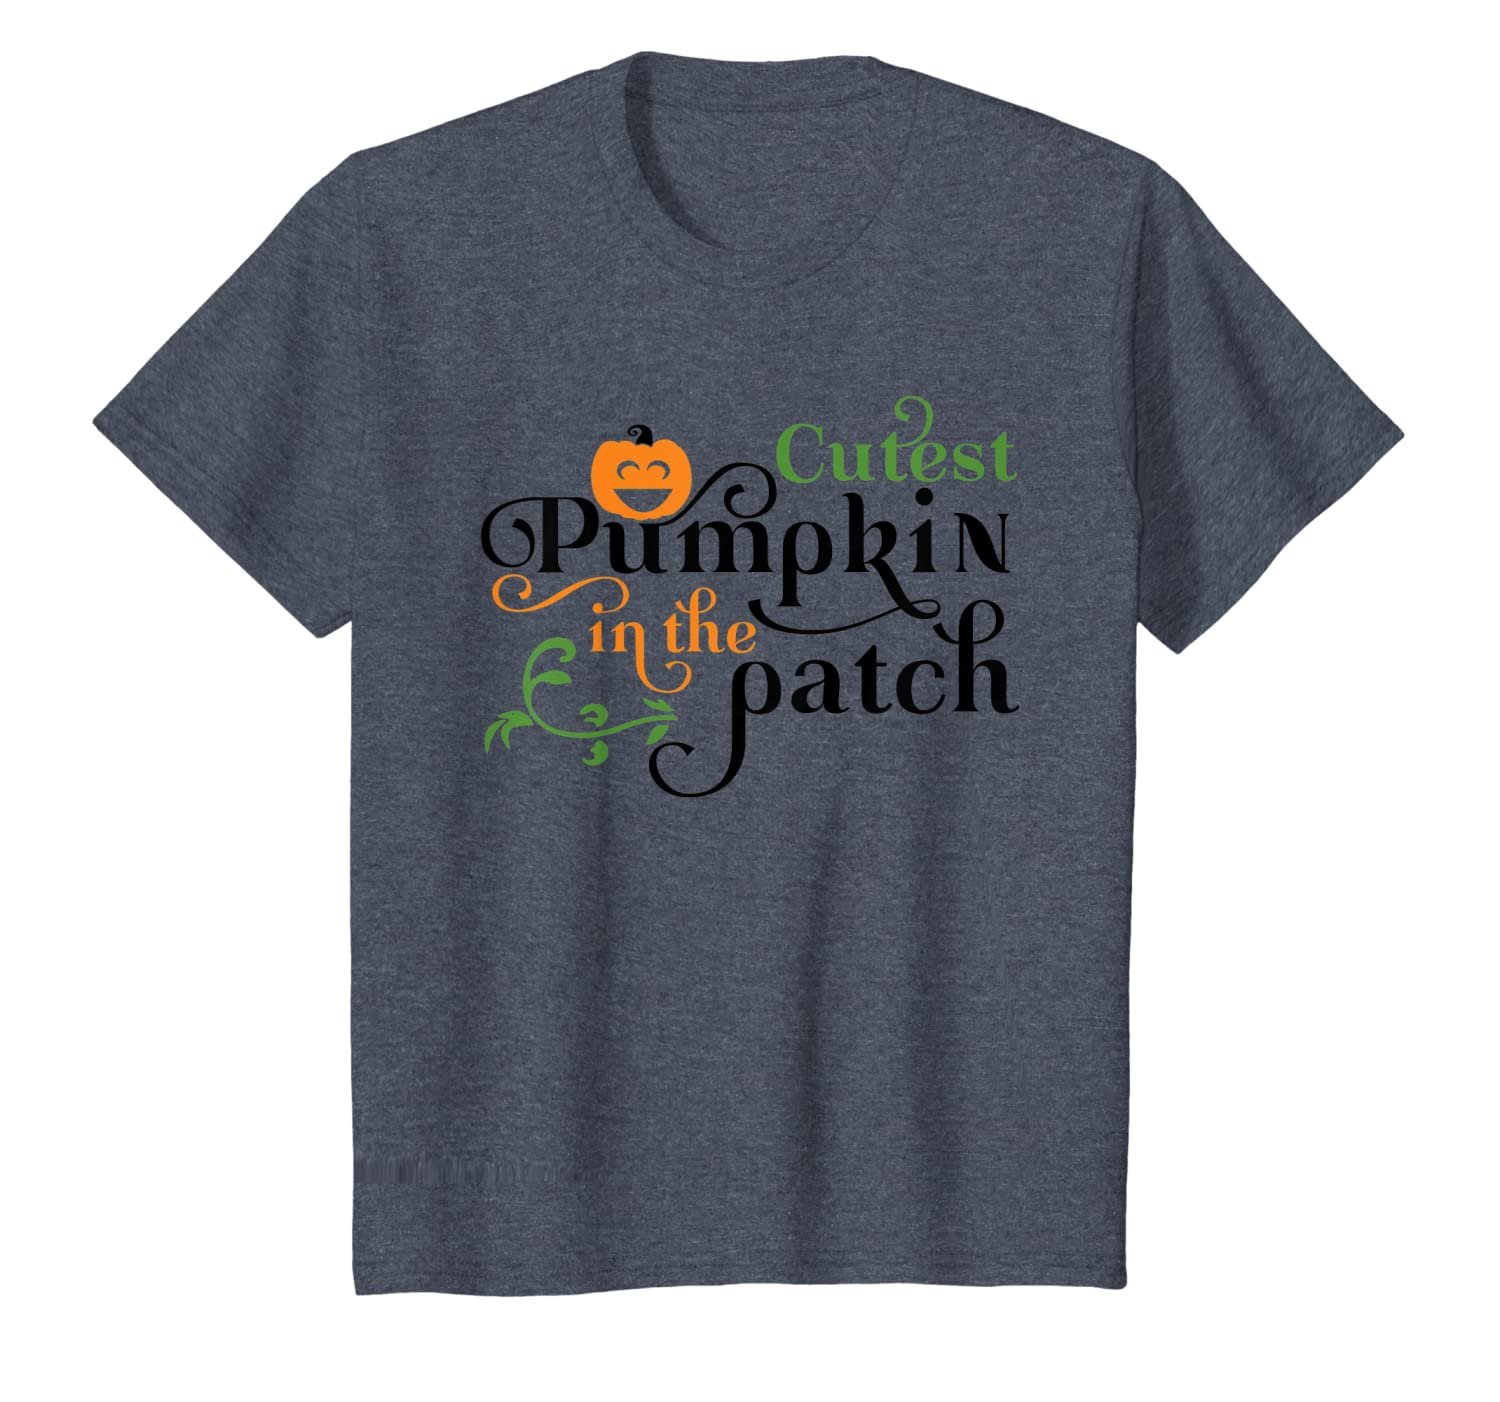 Cutest pumpkin in the patch t-shirt Fall shirt Halloween